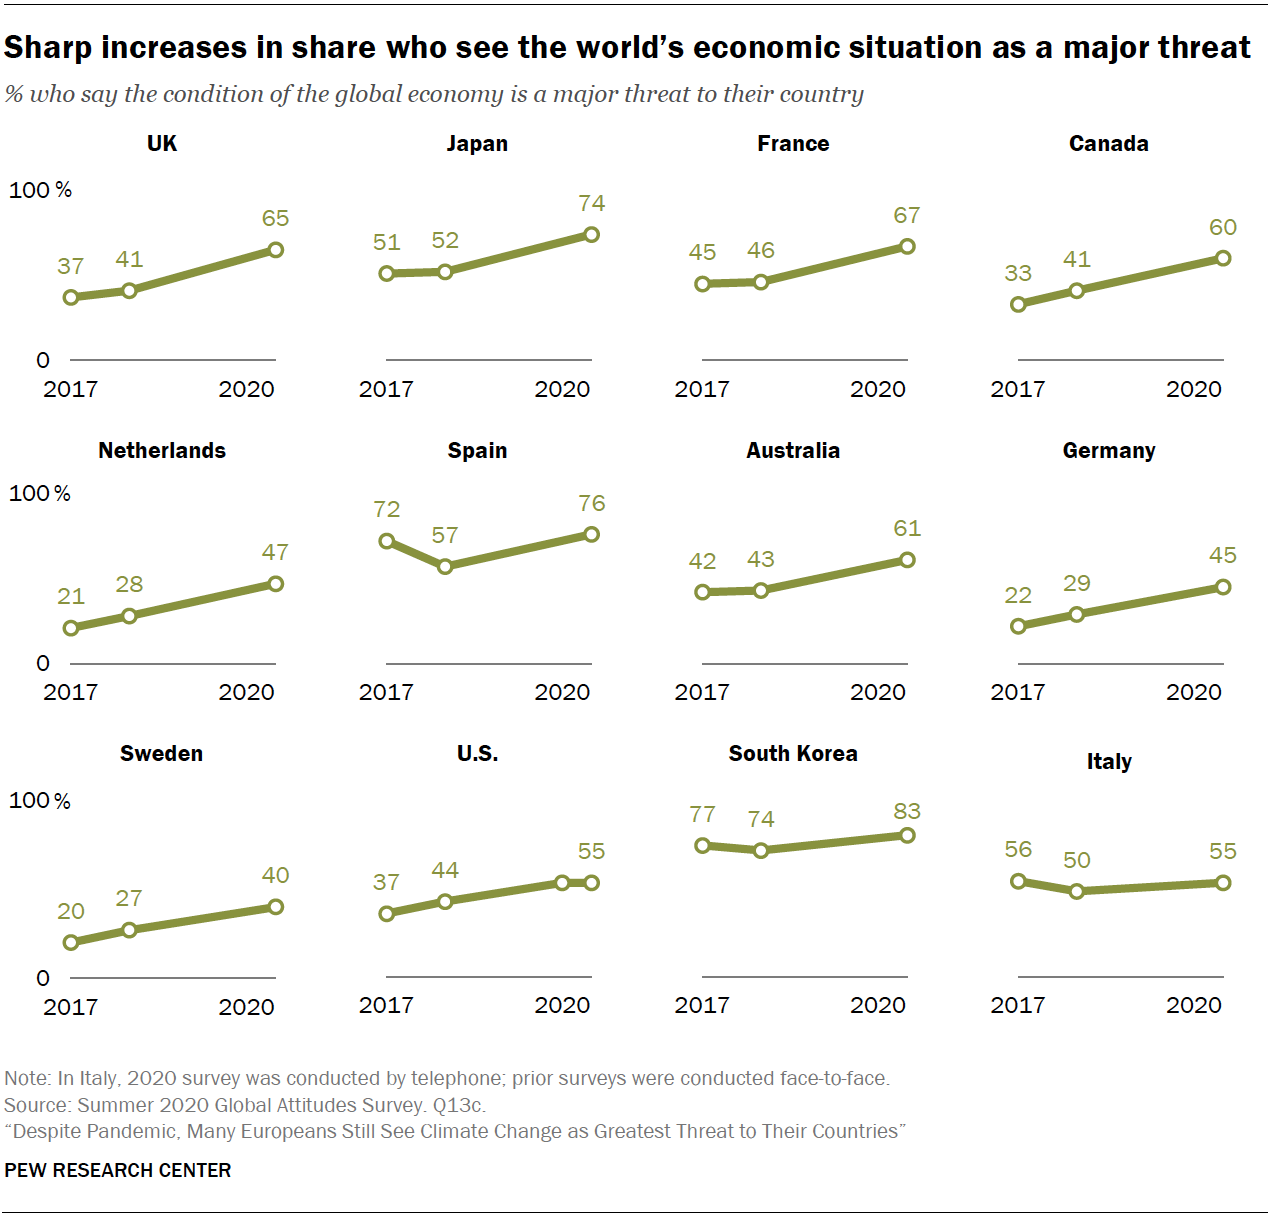 Chart shows sharp increases in share who see the world's economic situation as a major threat